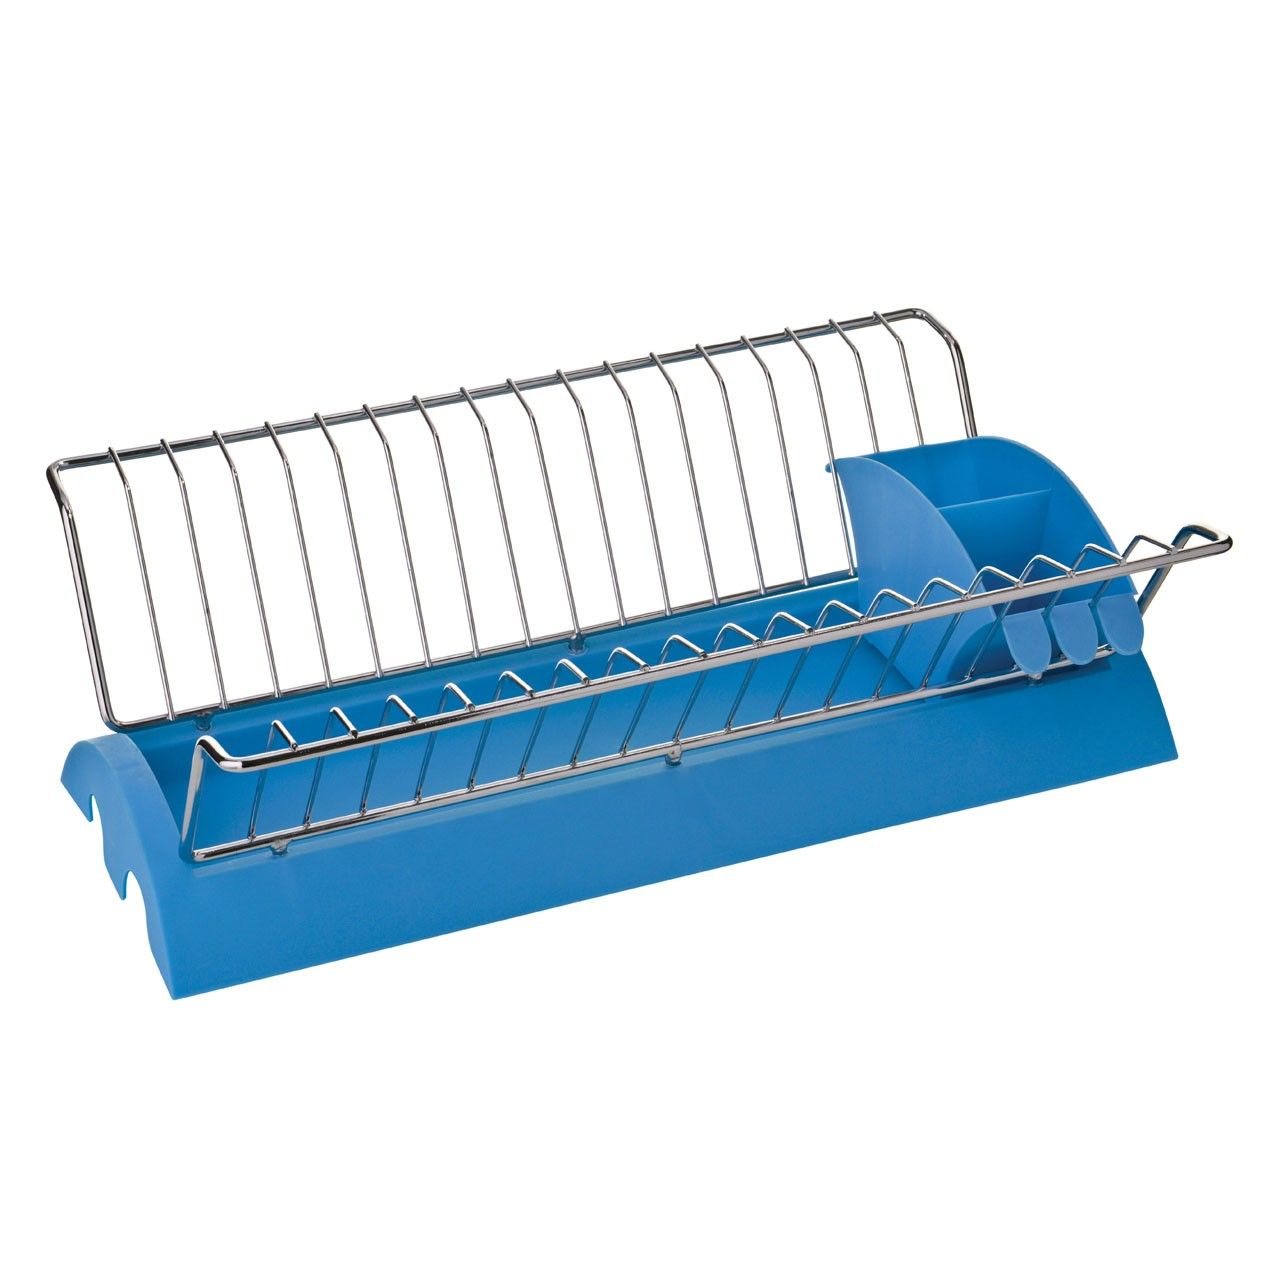 Dish Drainer with Removable Cutlery Caddy - Blue